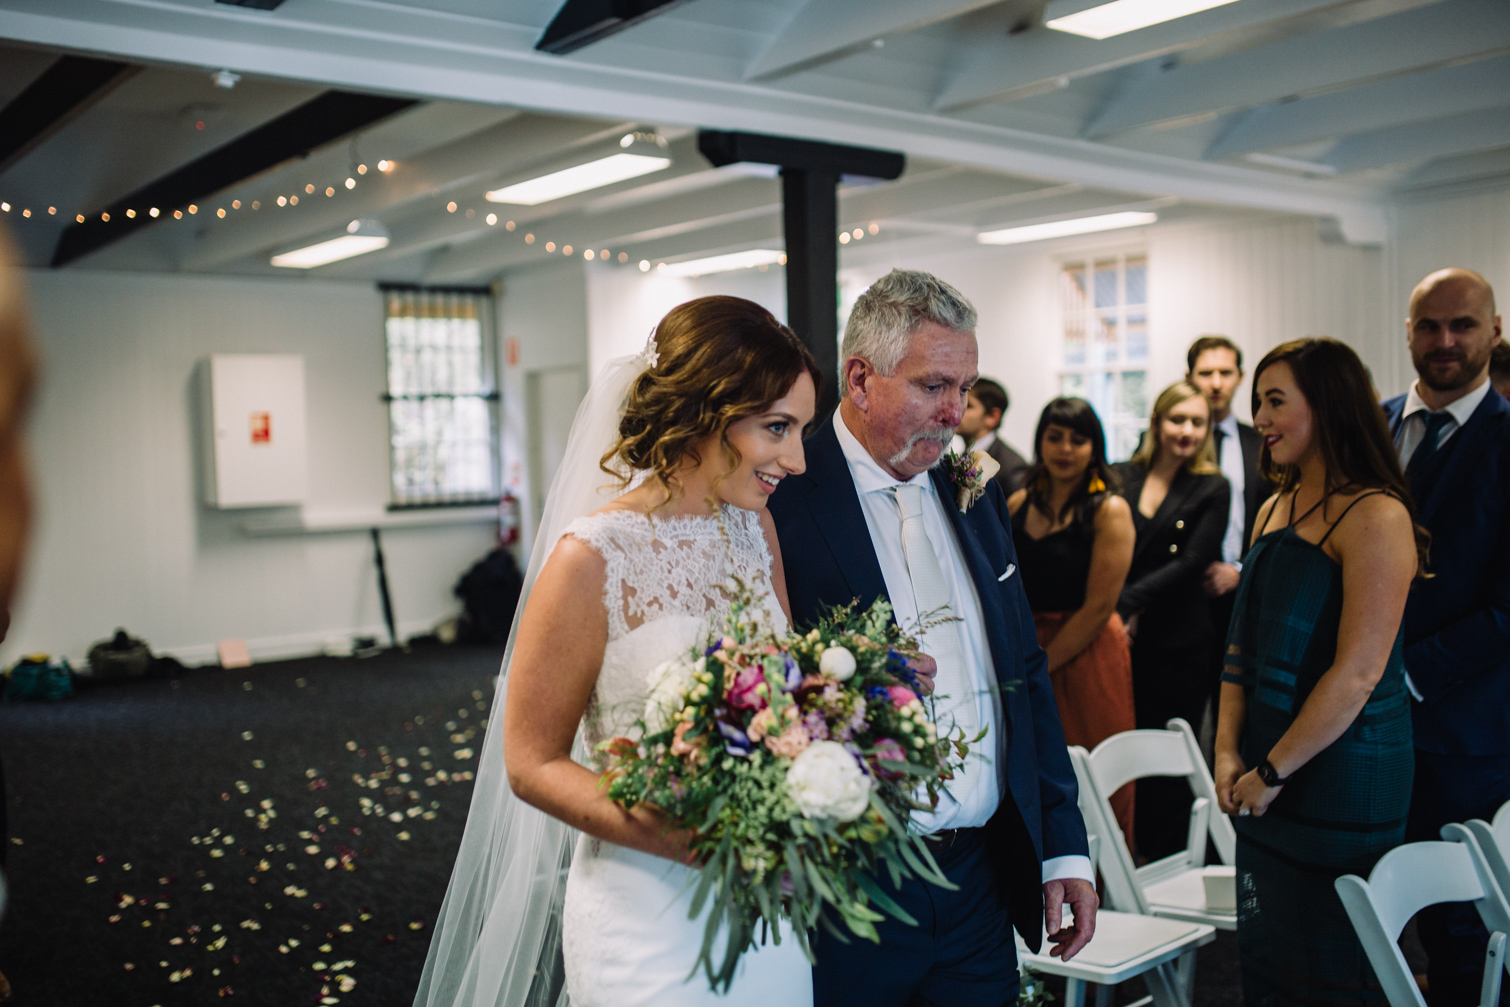 Riverlife_Wedding_Brisbane_Wedding_Photographer-37.jpg